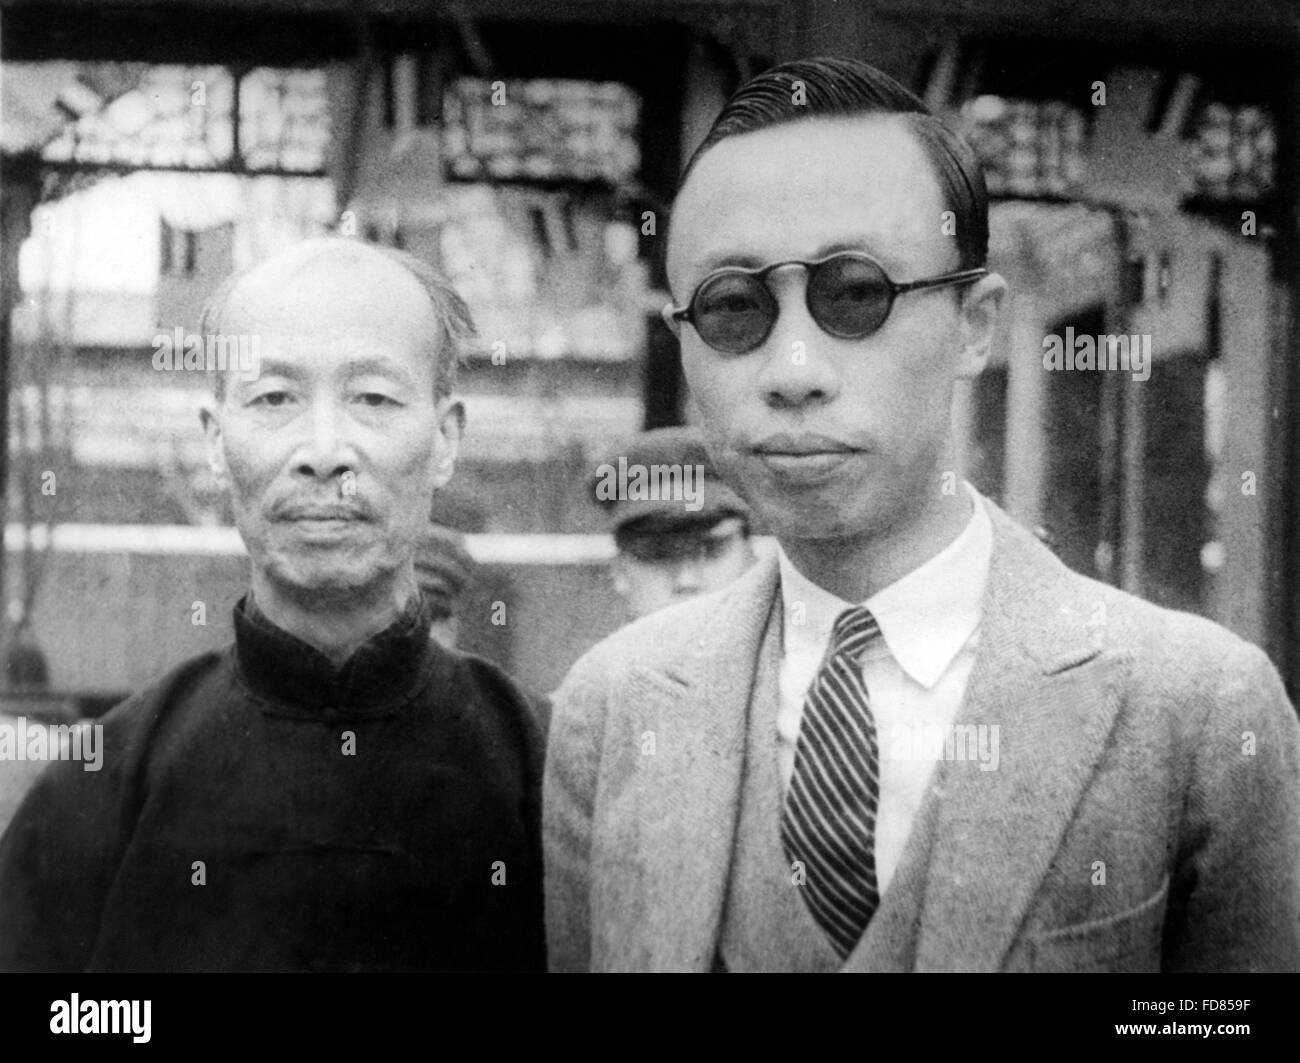 henry puyi Puyi (chinese: 溥儀 7 february 1906 – 17 october 1967), of the manchu aisin gioro clan, commonly known as henry pu yi, was the last emperor of china and the twelfth and final ruler of the qing dynasty.